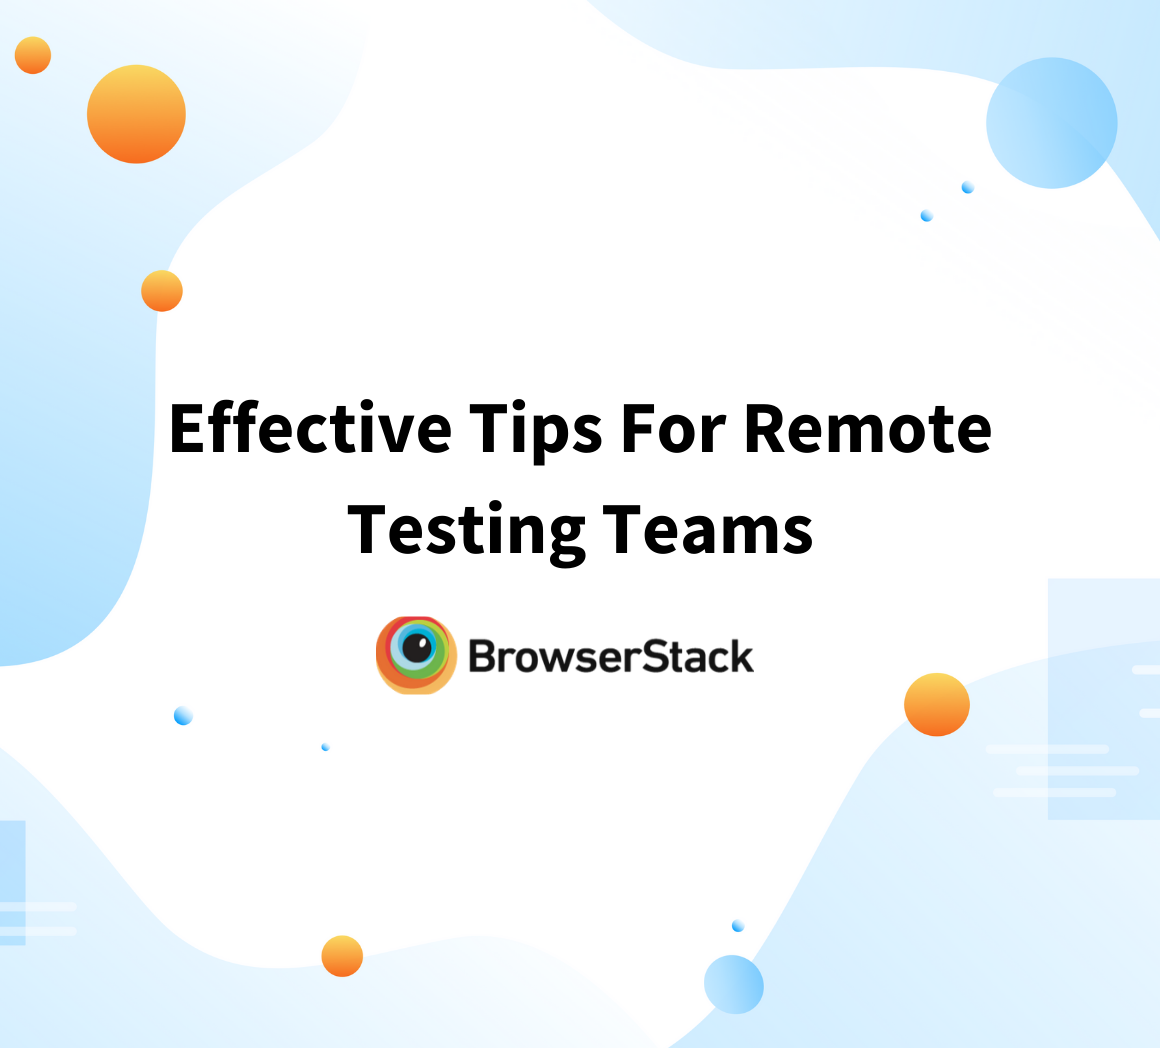 Tips For Remote Testing Teams